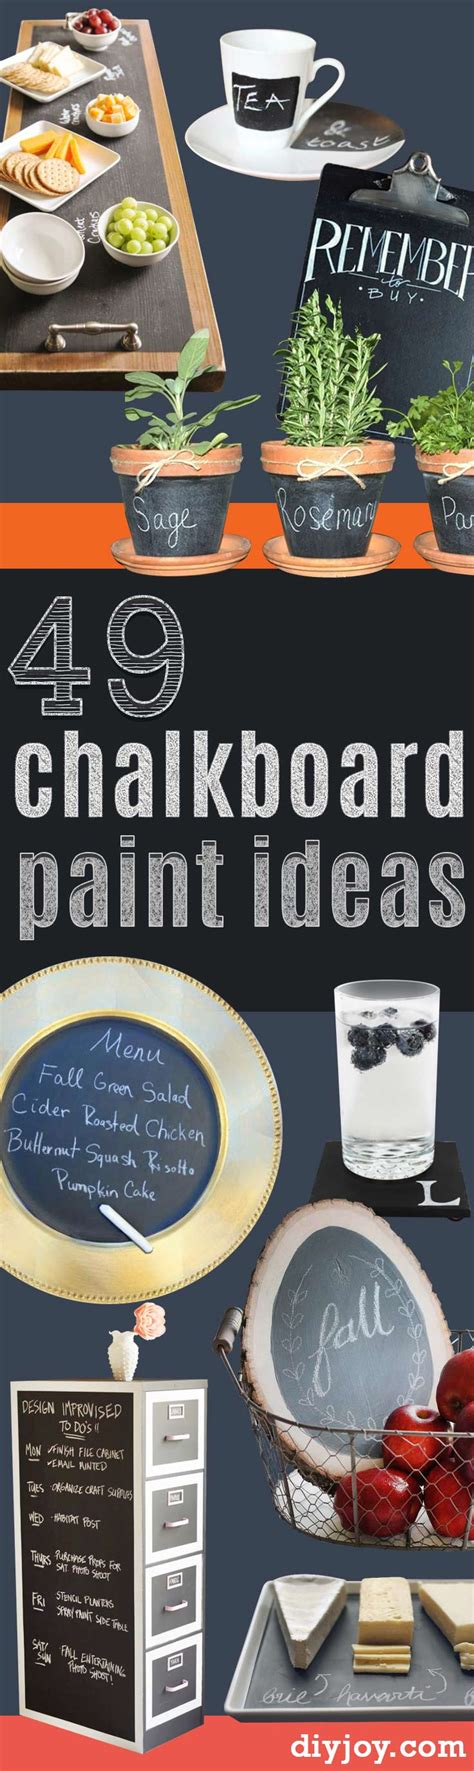 chalkboard paint craft projects 52 diy chalkboard paint ideas for furniture and decor